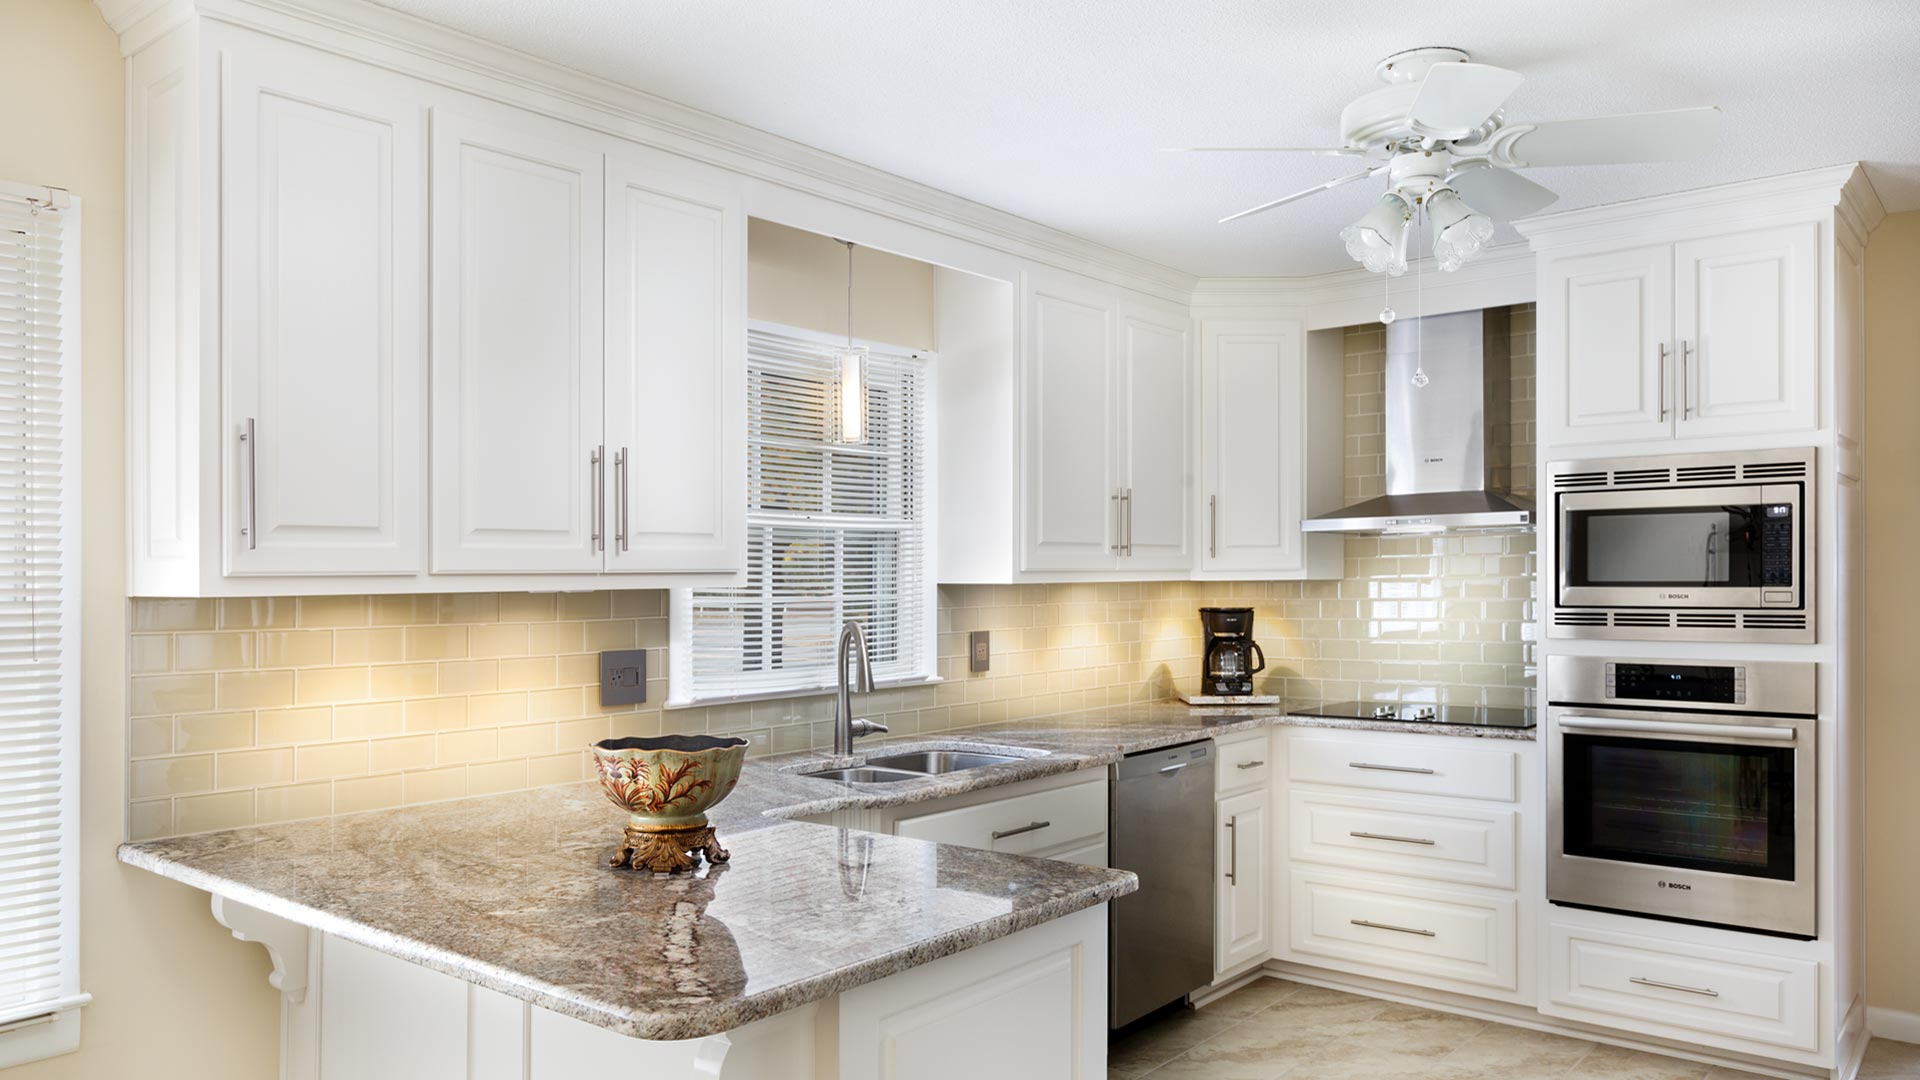 Kitchen Remodeling Gallery – Kitchen & Bath of Wilmington